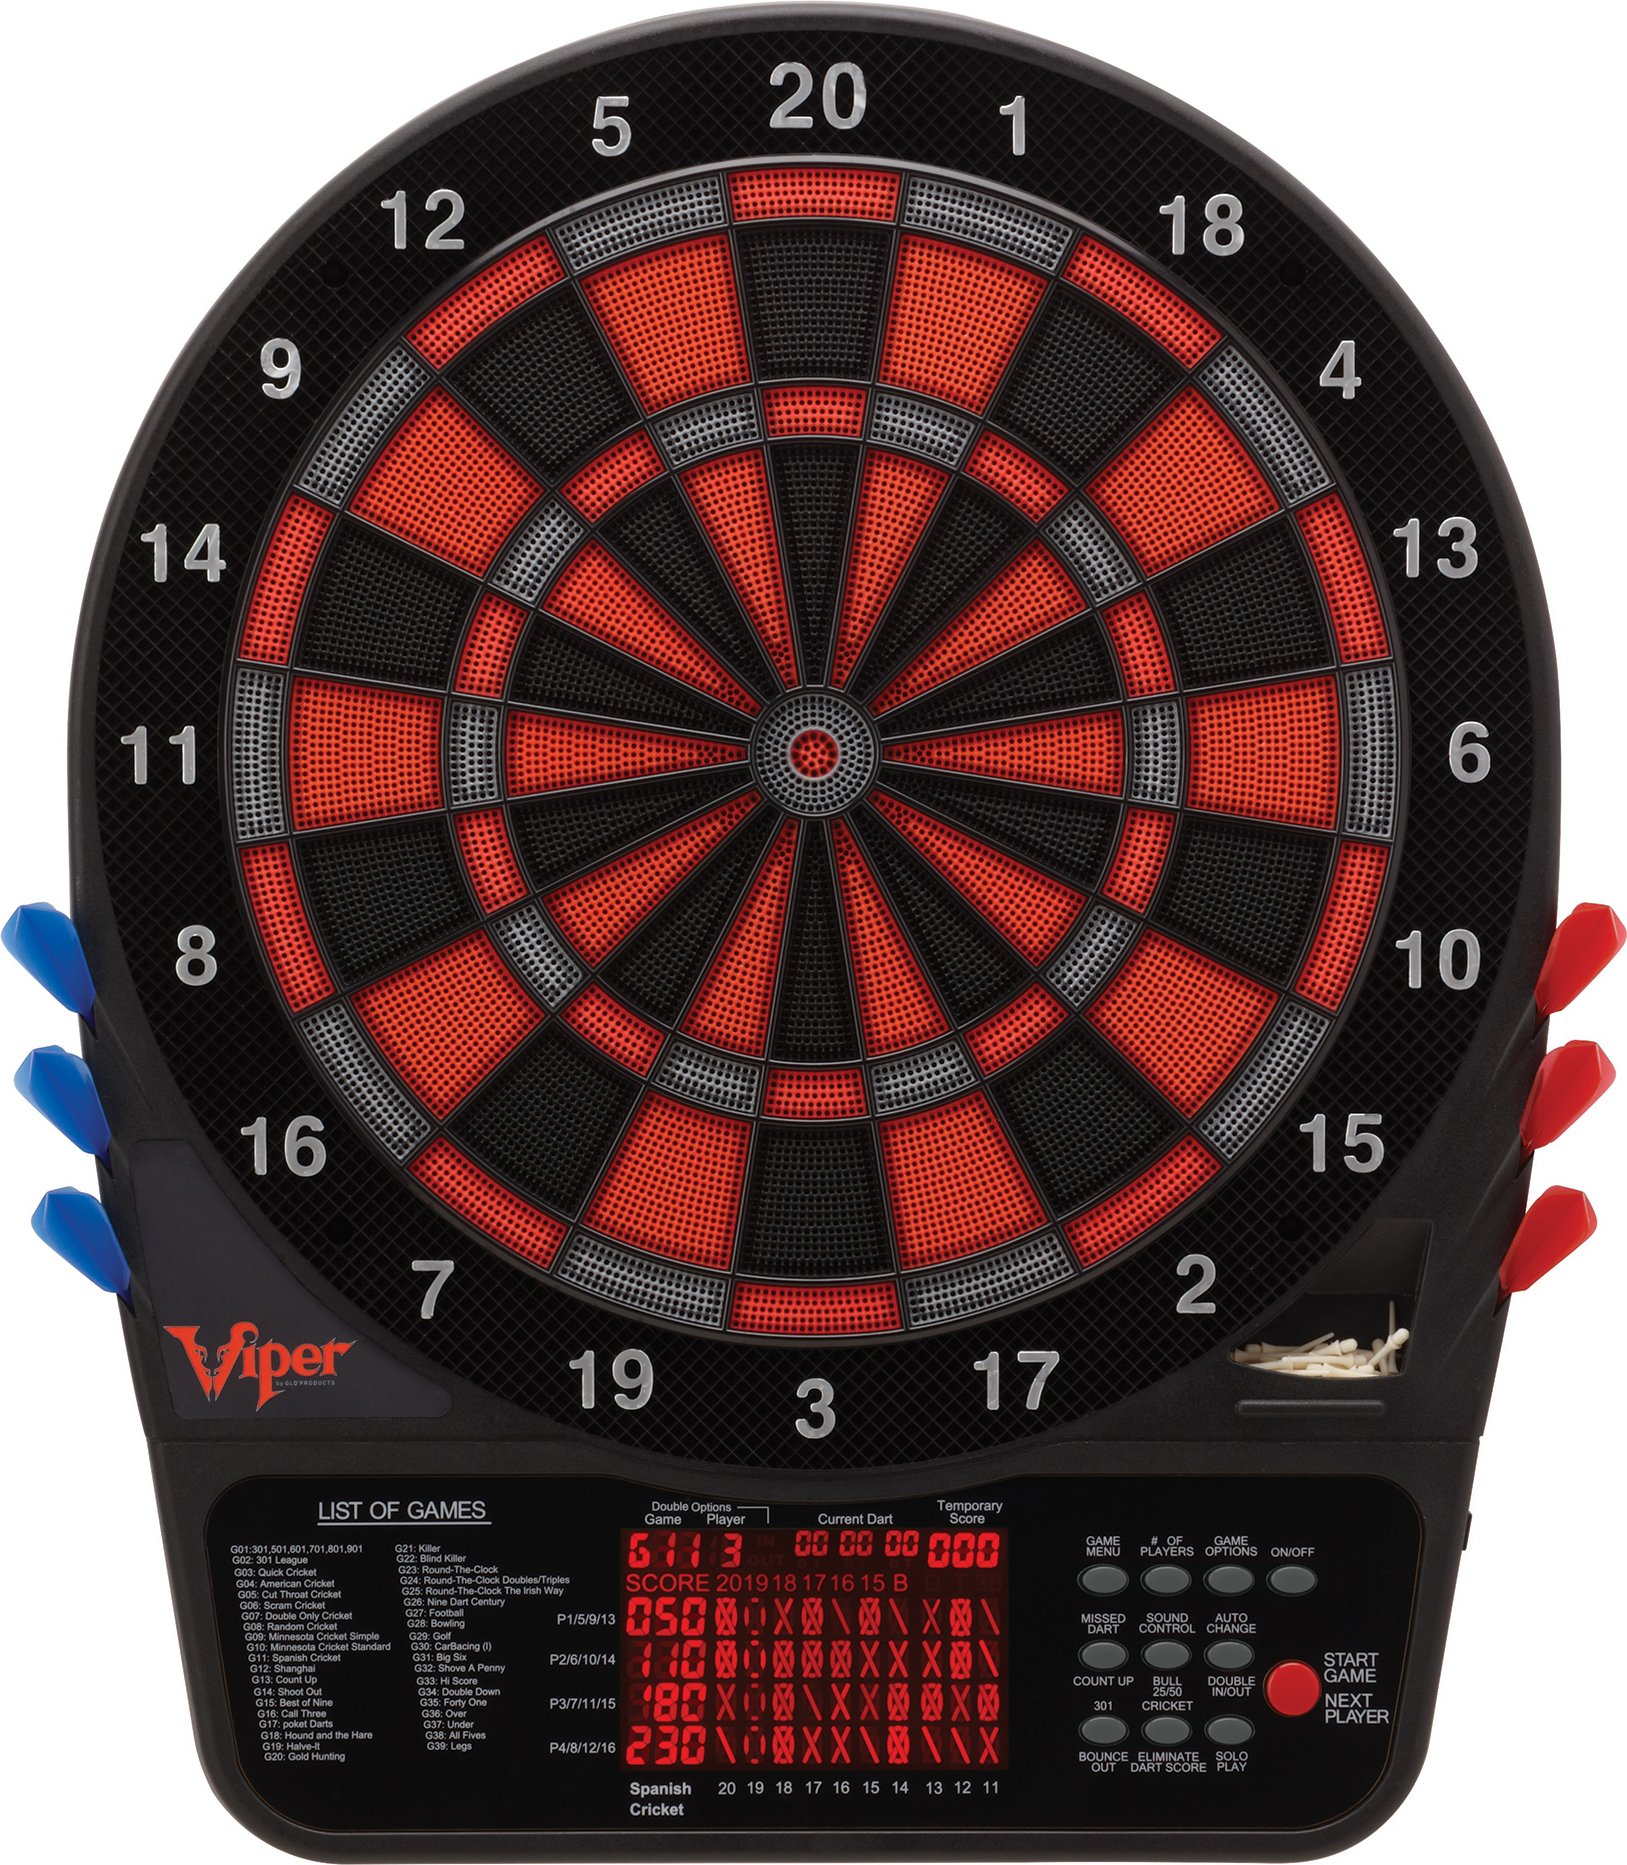 Viper 800 Electronic Soft Tip Dartboard by Viper (Image #1)